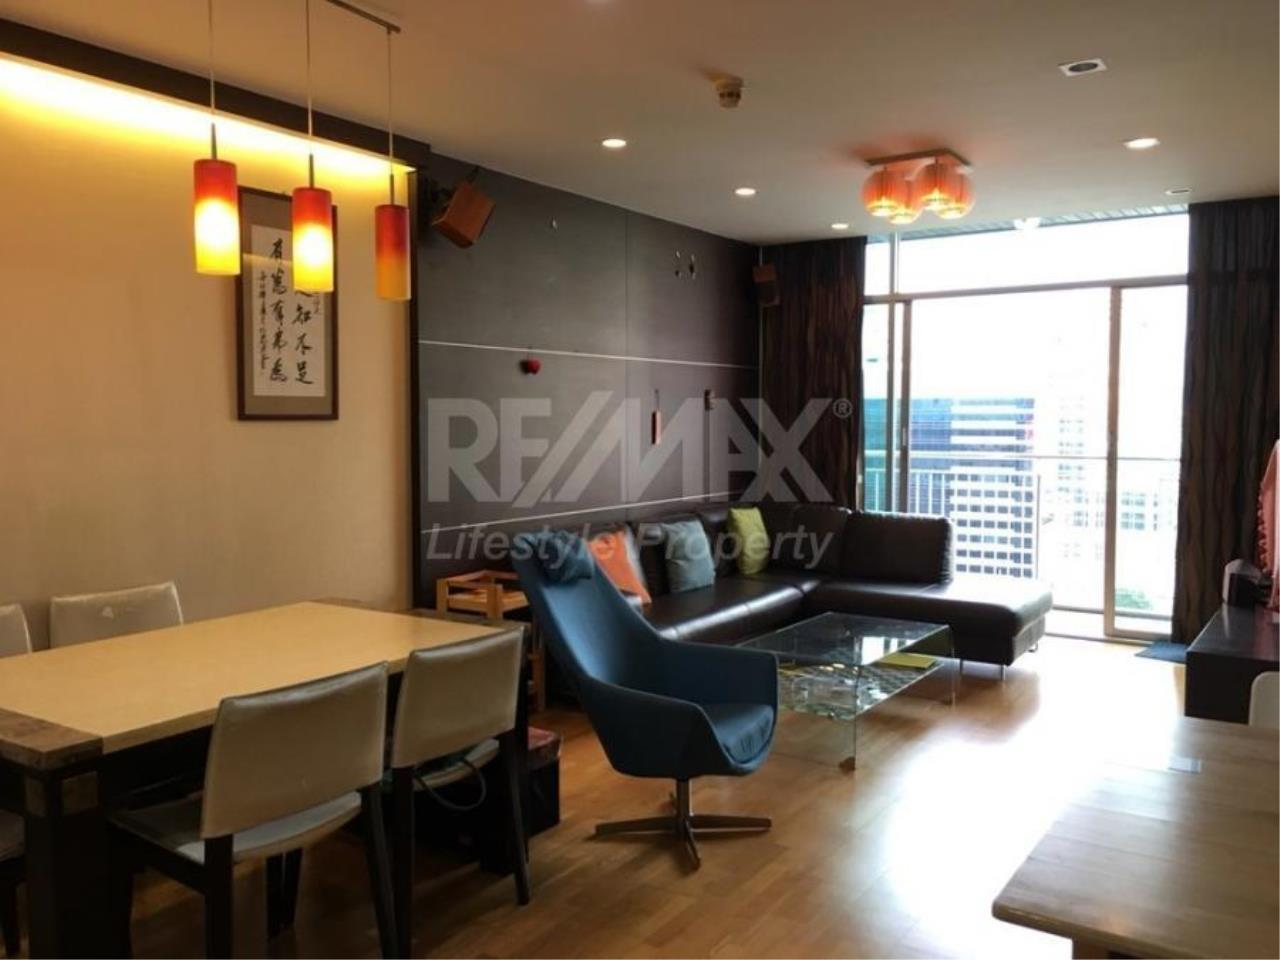 RE/MAX LifeStyle Property Agency's Urbana Sathorn 1